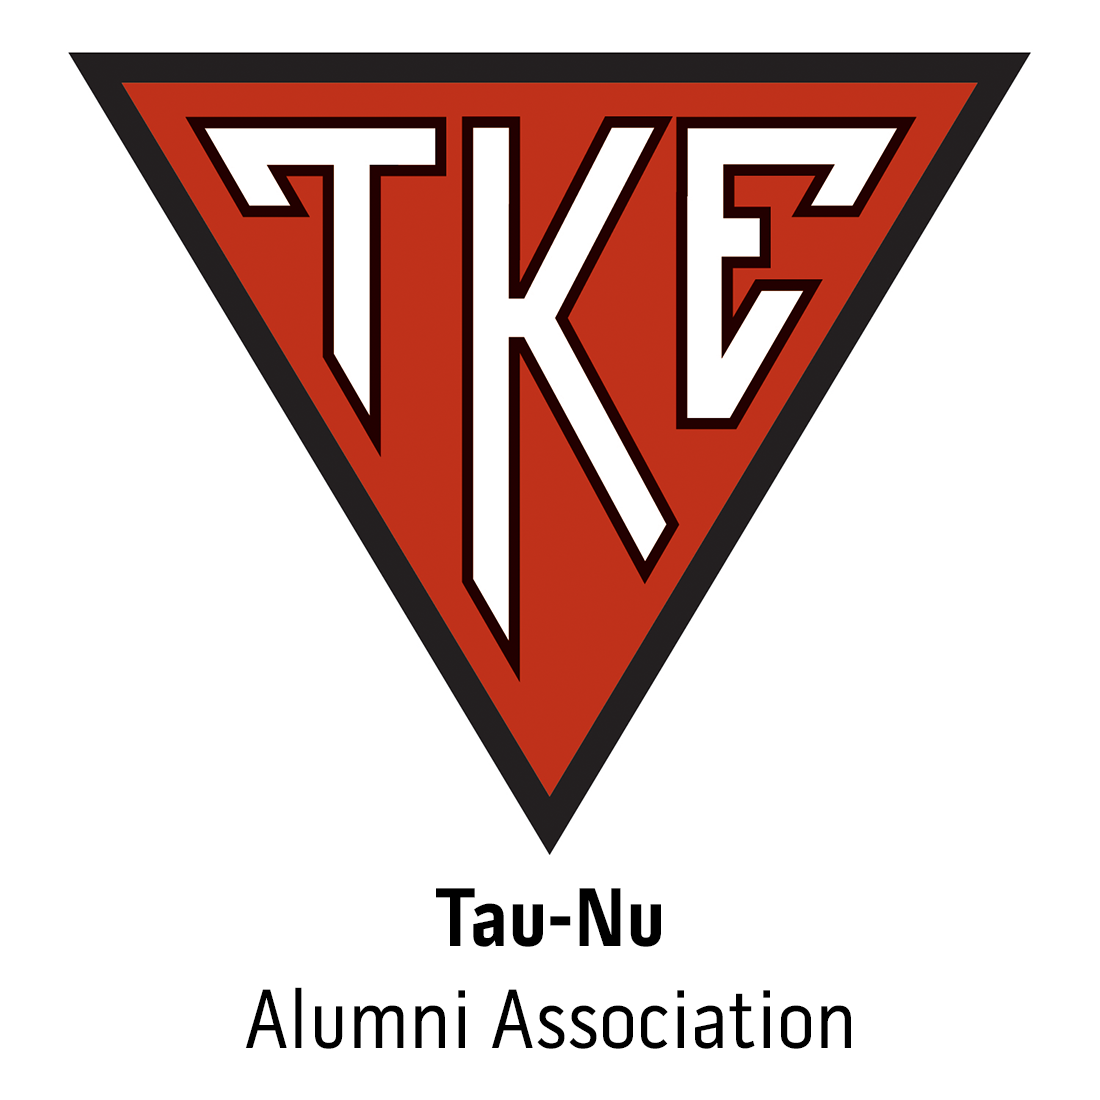 Tau-Nu Alumni Association for Shawnee State University